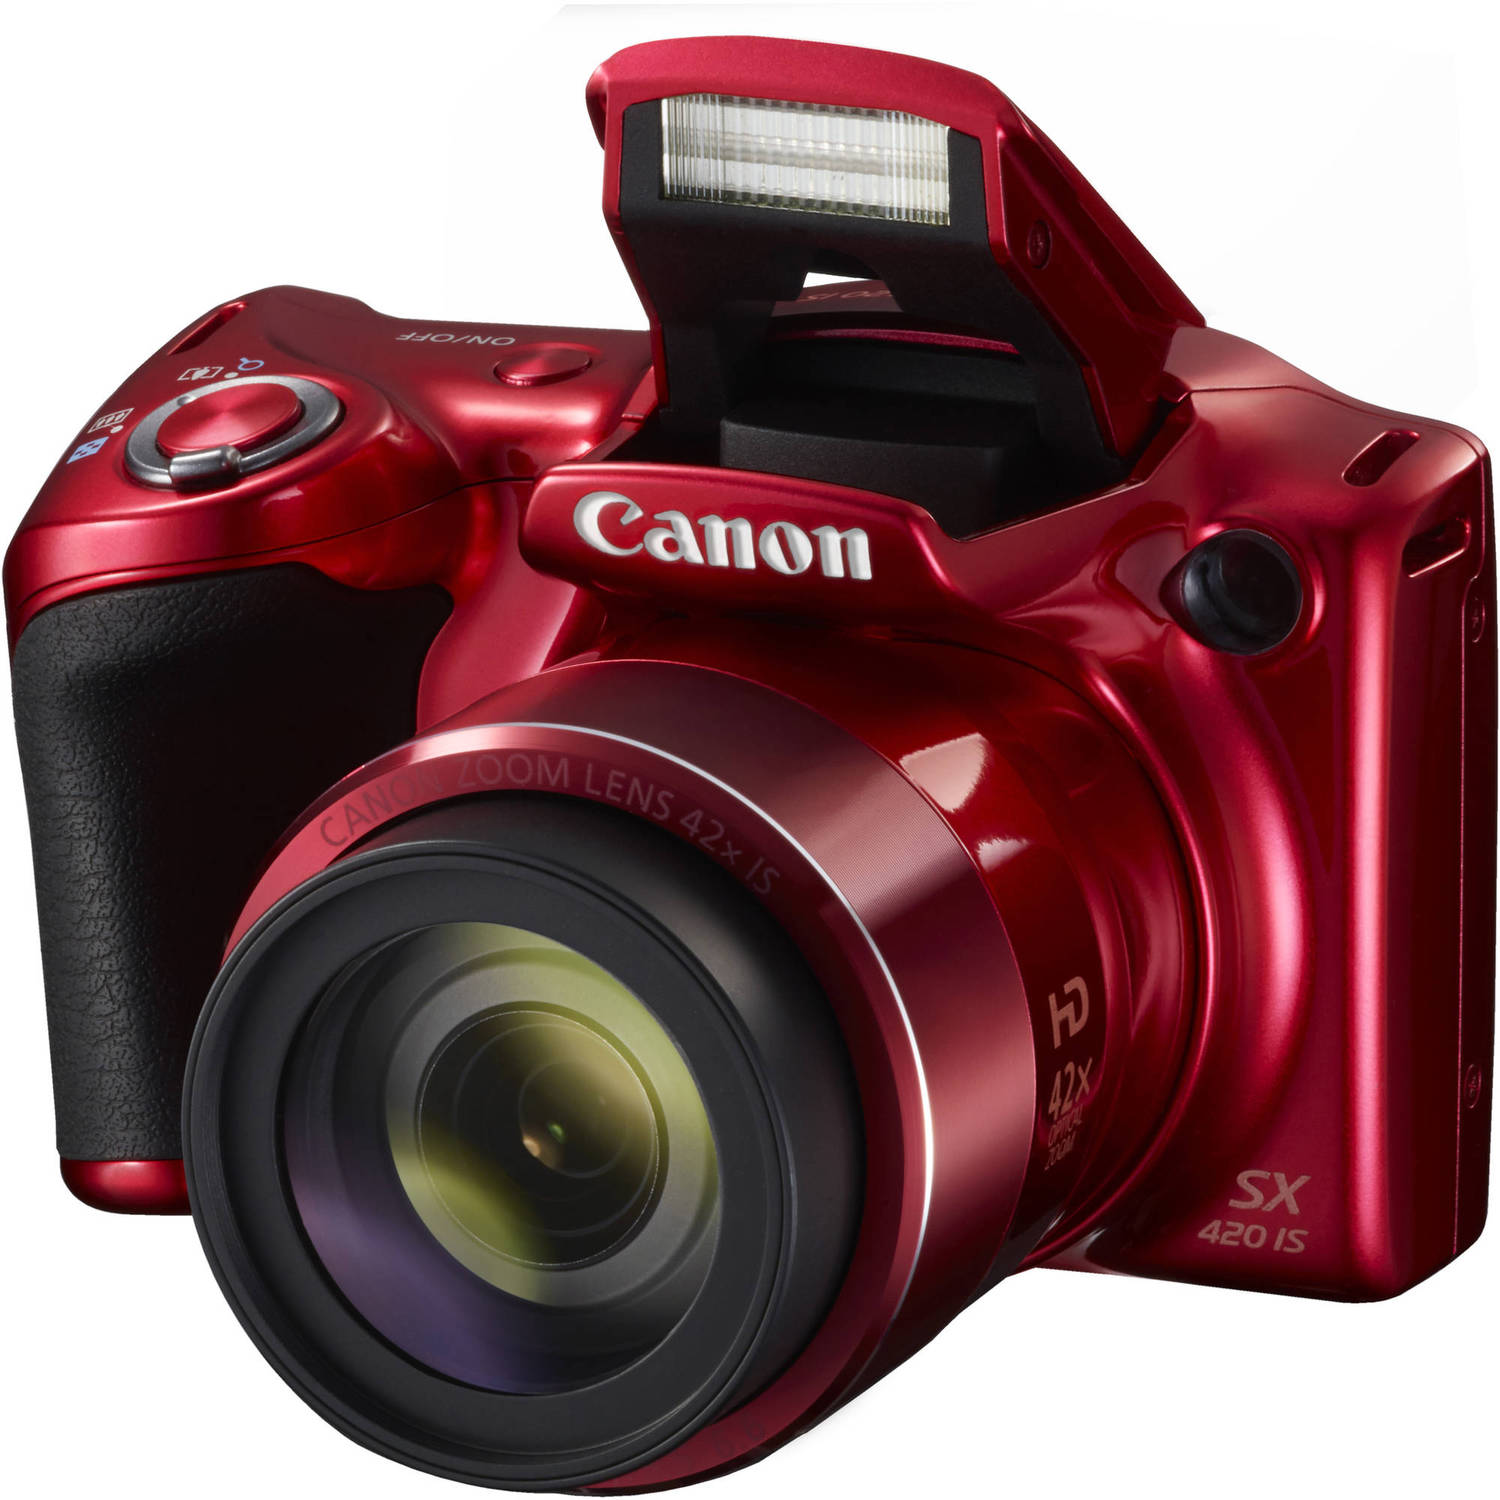 Canon compackt SX420